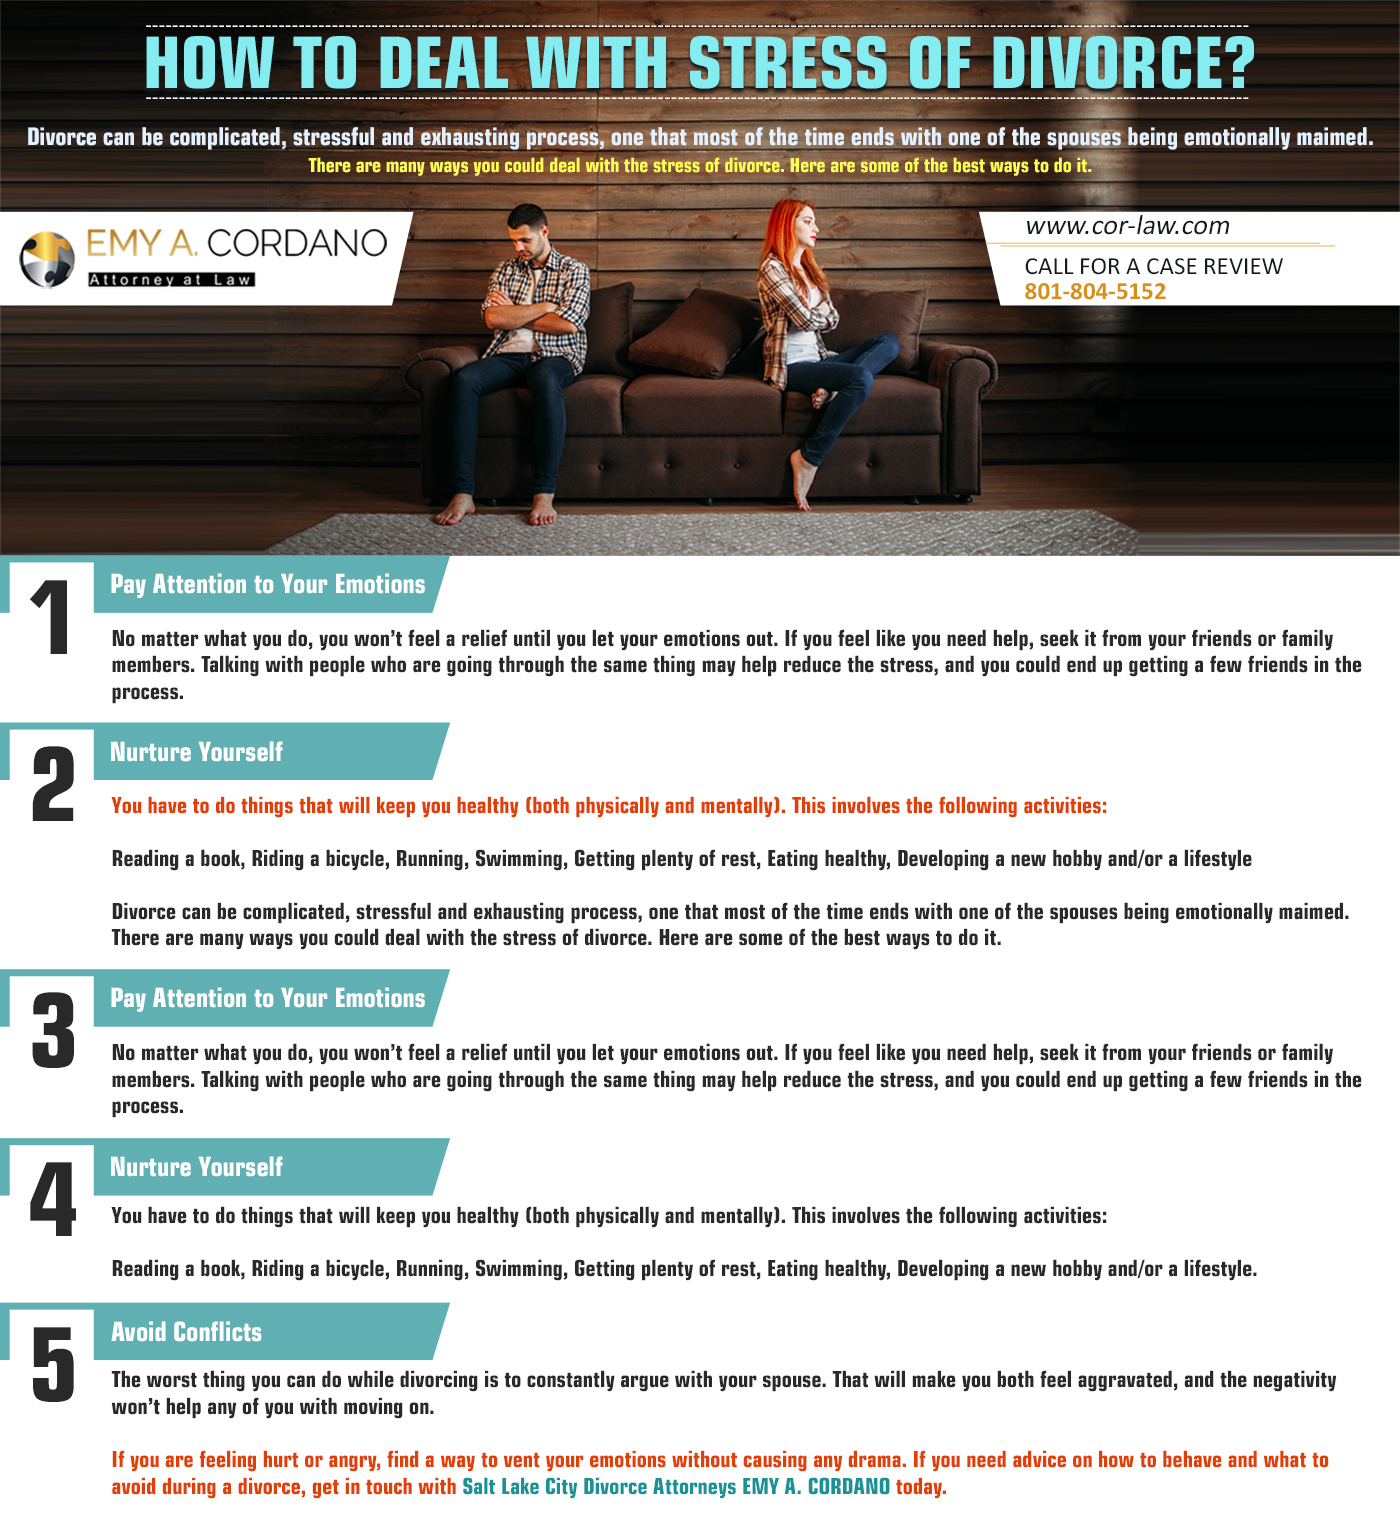 How to Deal With Stress of Divorce?